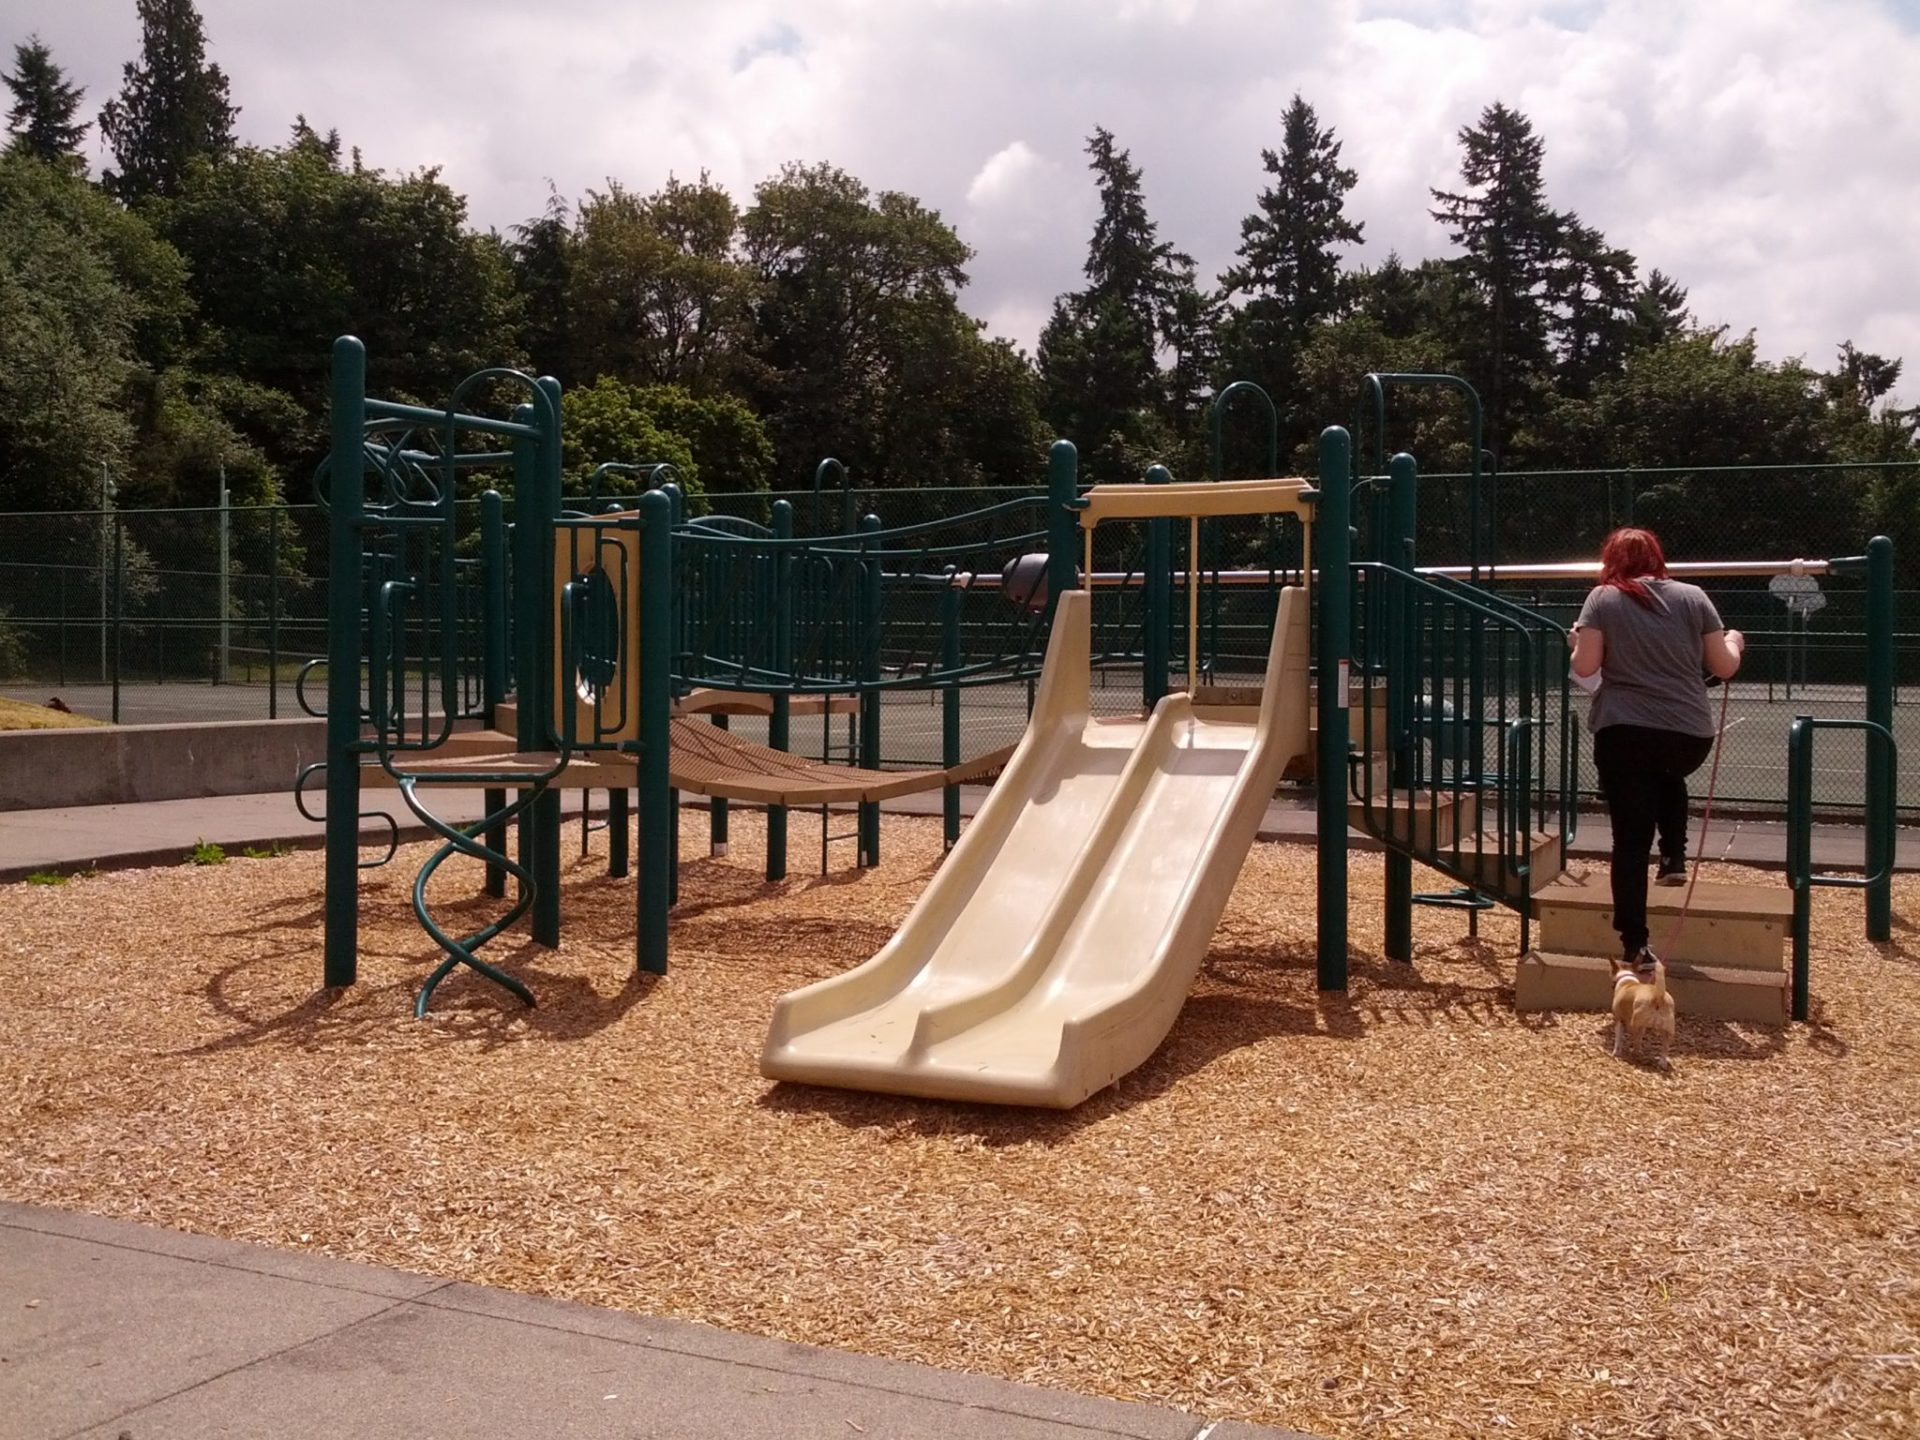 Kent Parks reopens playgrounds, skate parks, courts & more